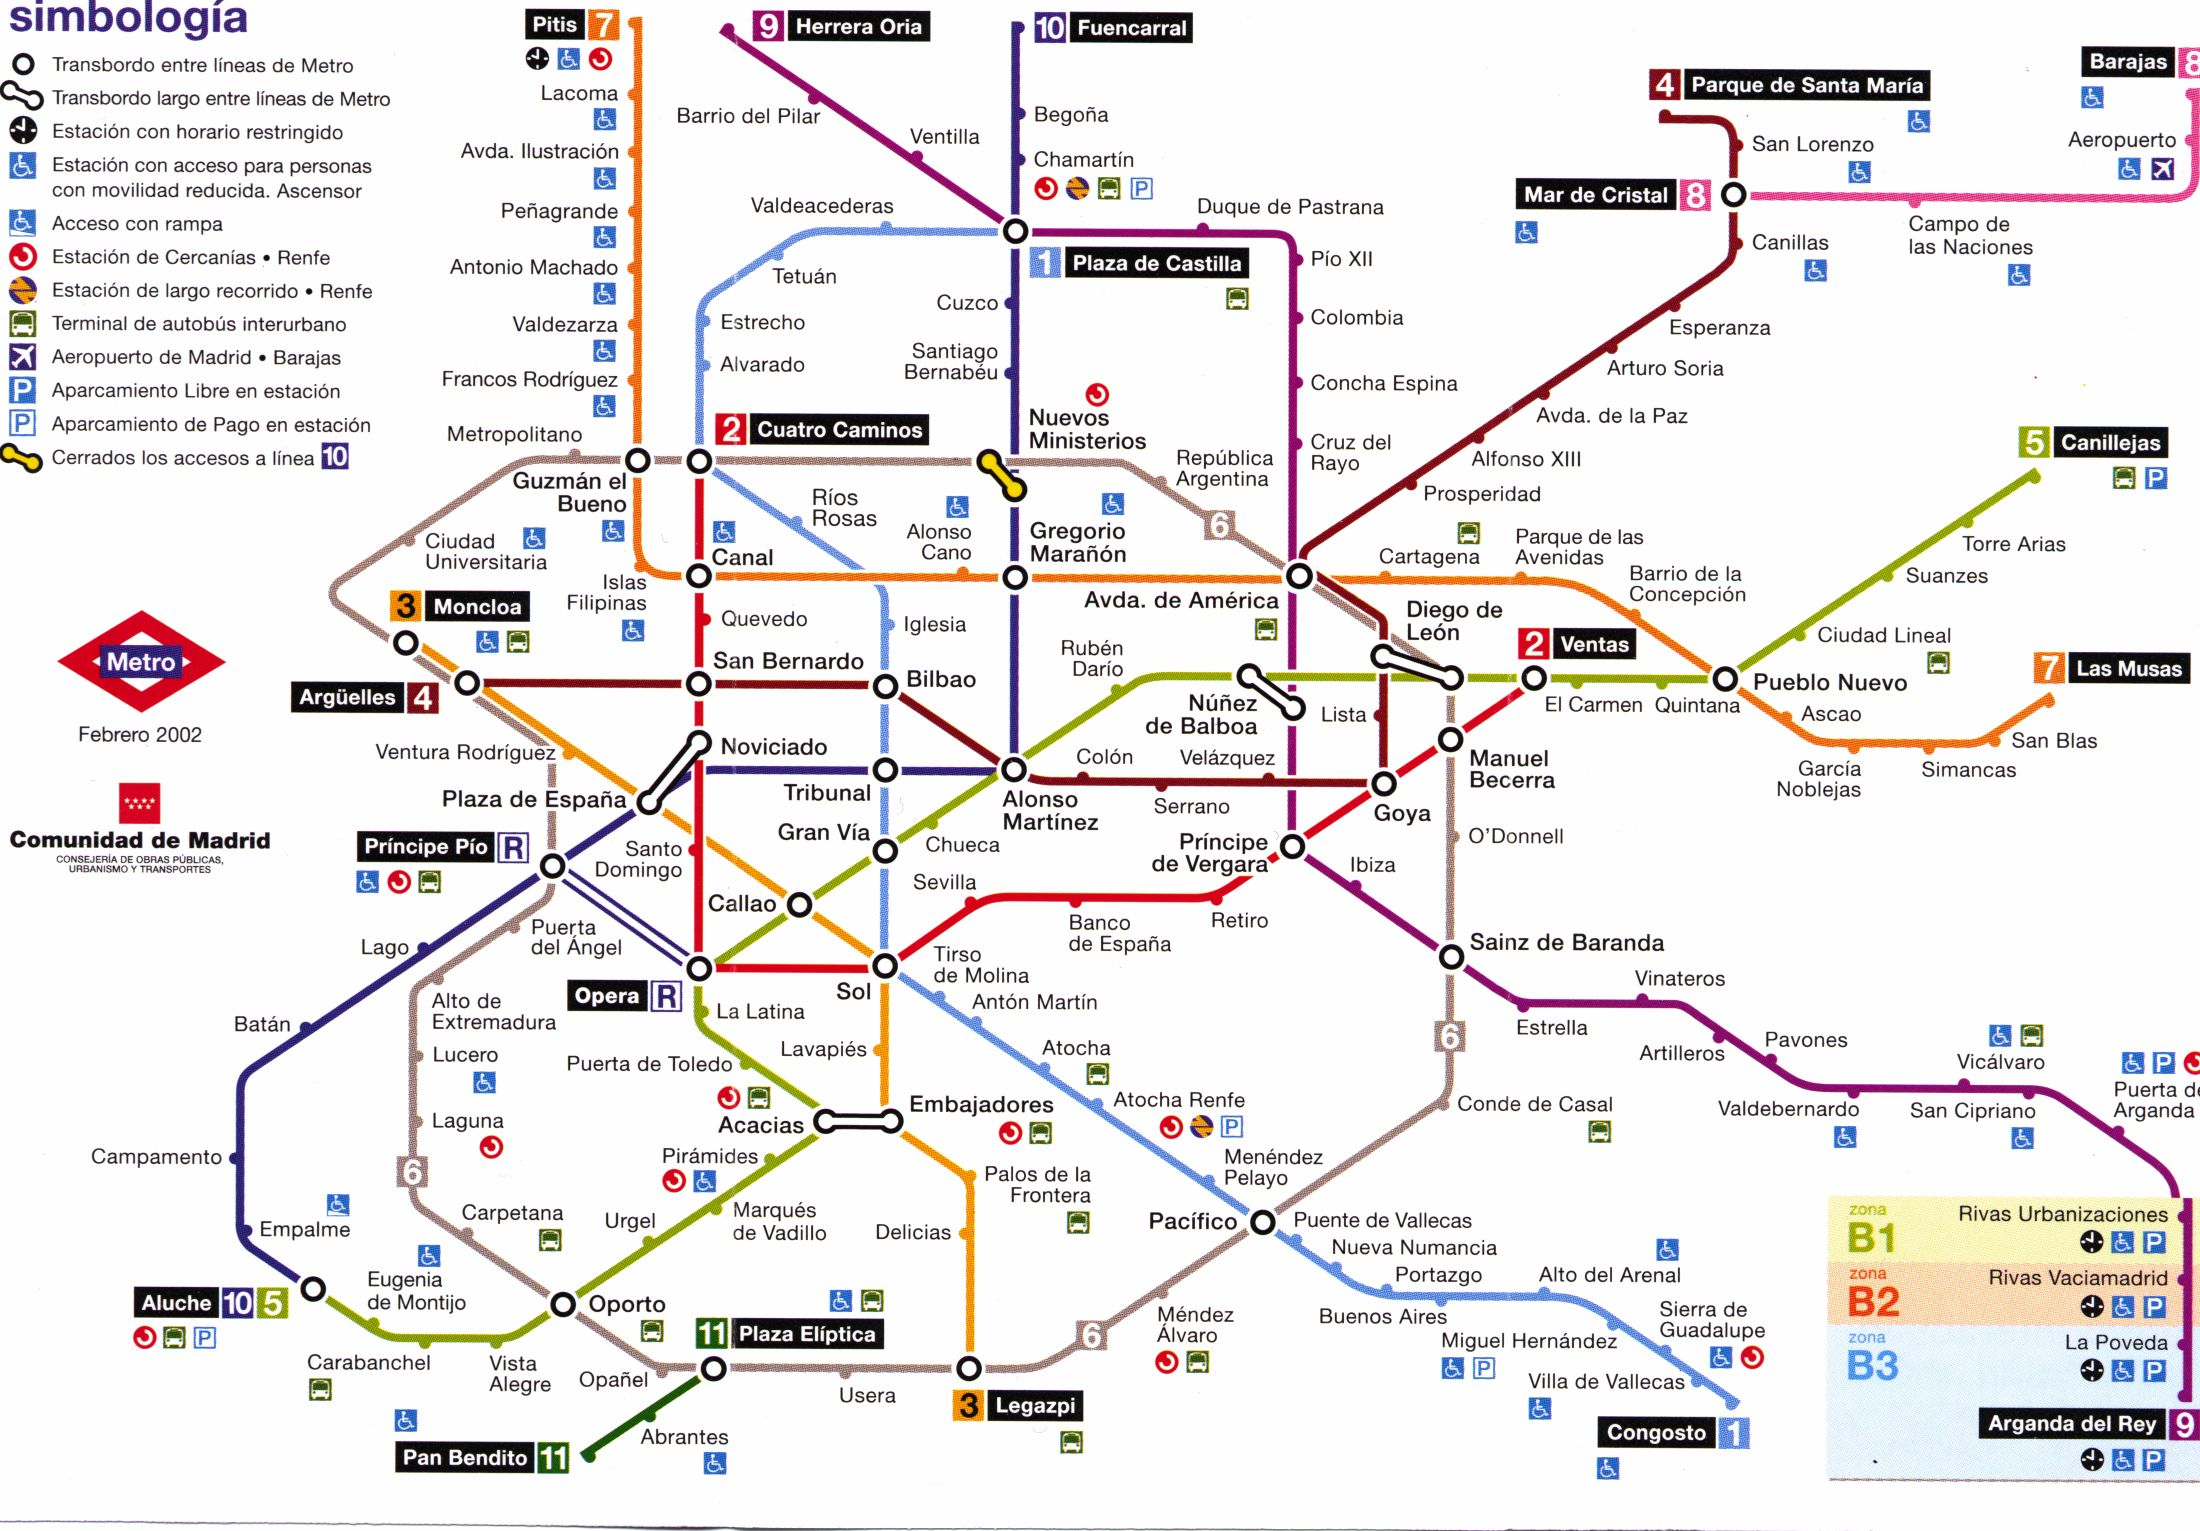 Madrid underground map see map details from http://138.4.10.197:8080